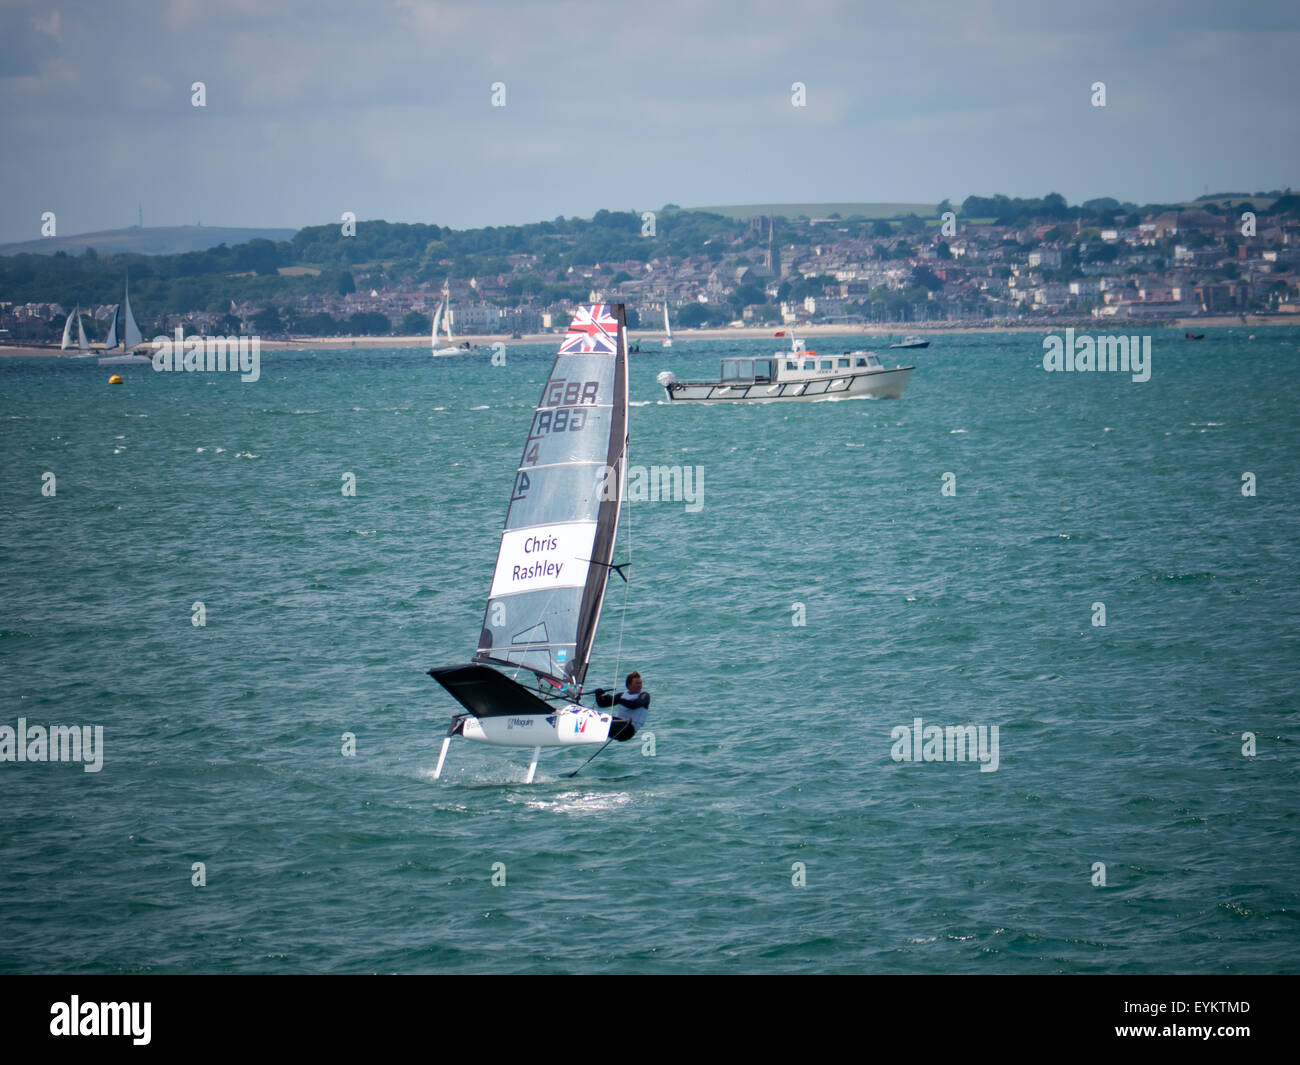 Chris Rashley Sailing His Moth Hydrofoil In The Solent